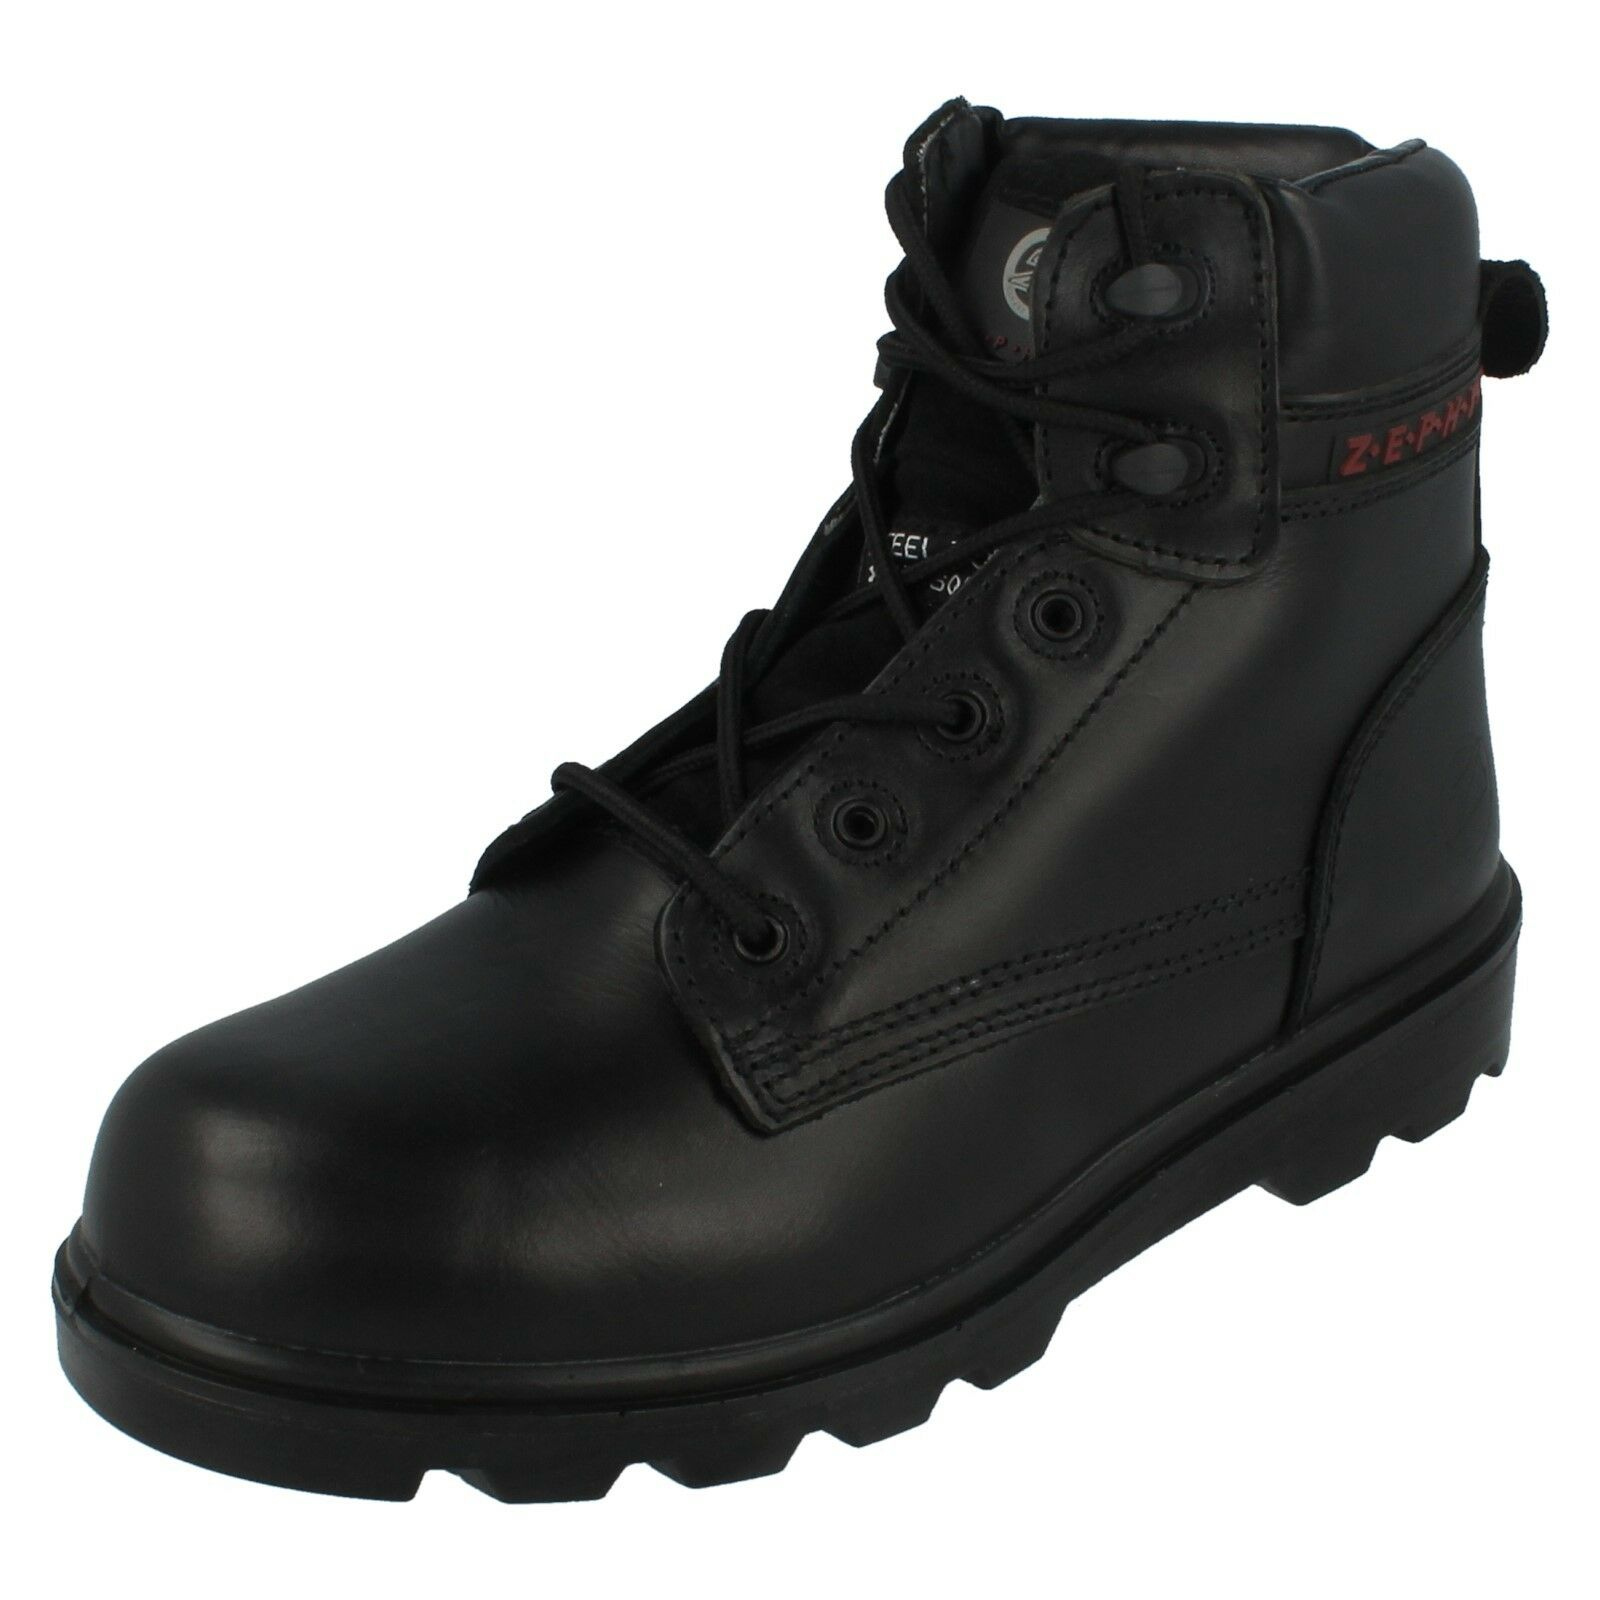 Mens ZX17 S3 SRC Leather Steel Toe Cap & Midsole Work Boots By Zephyr